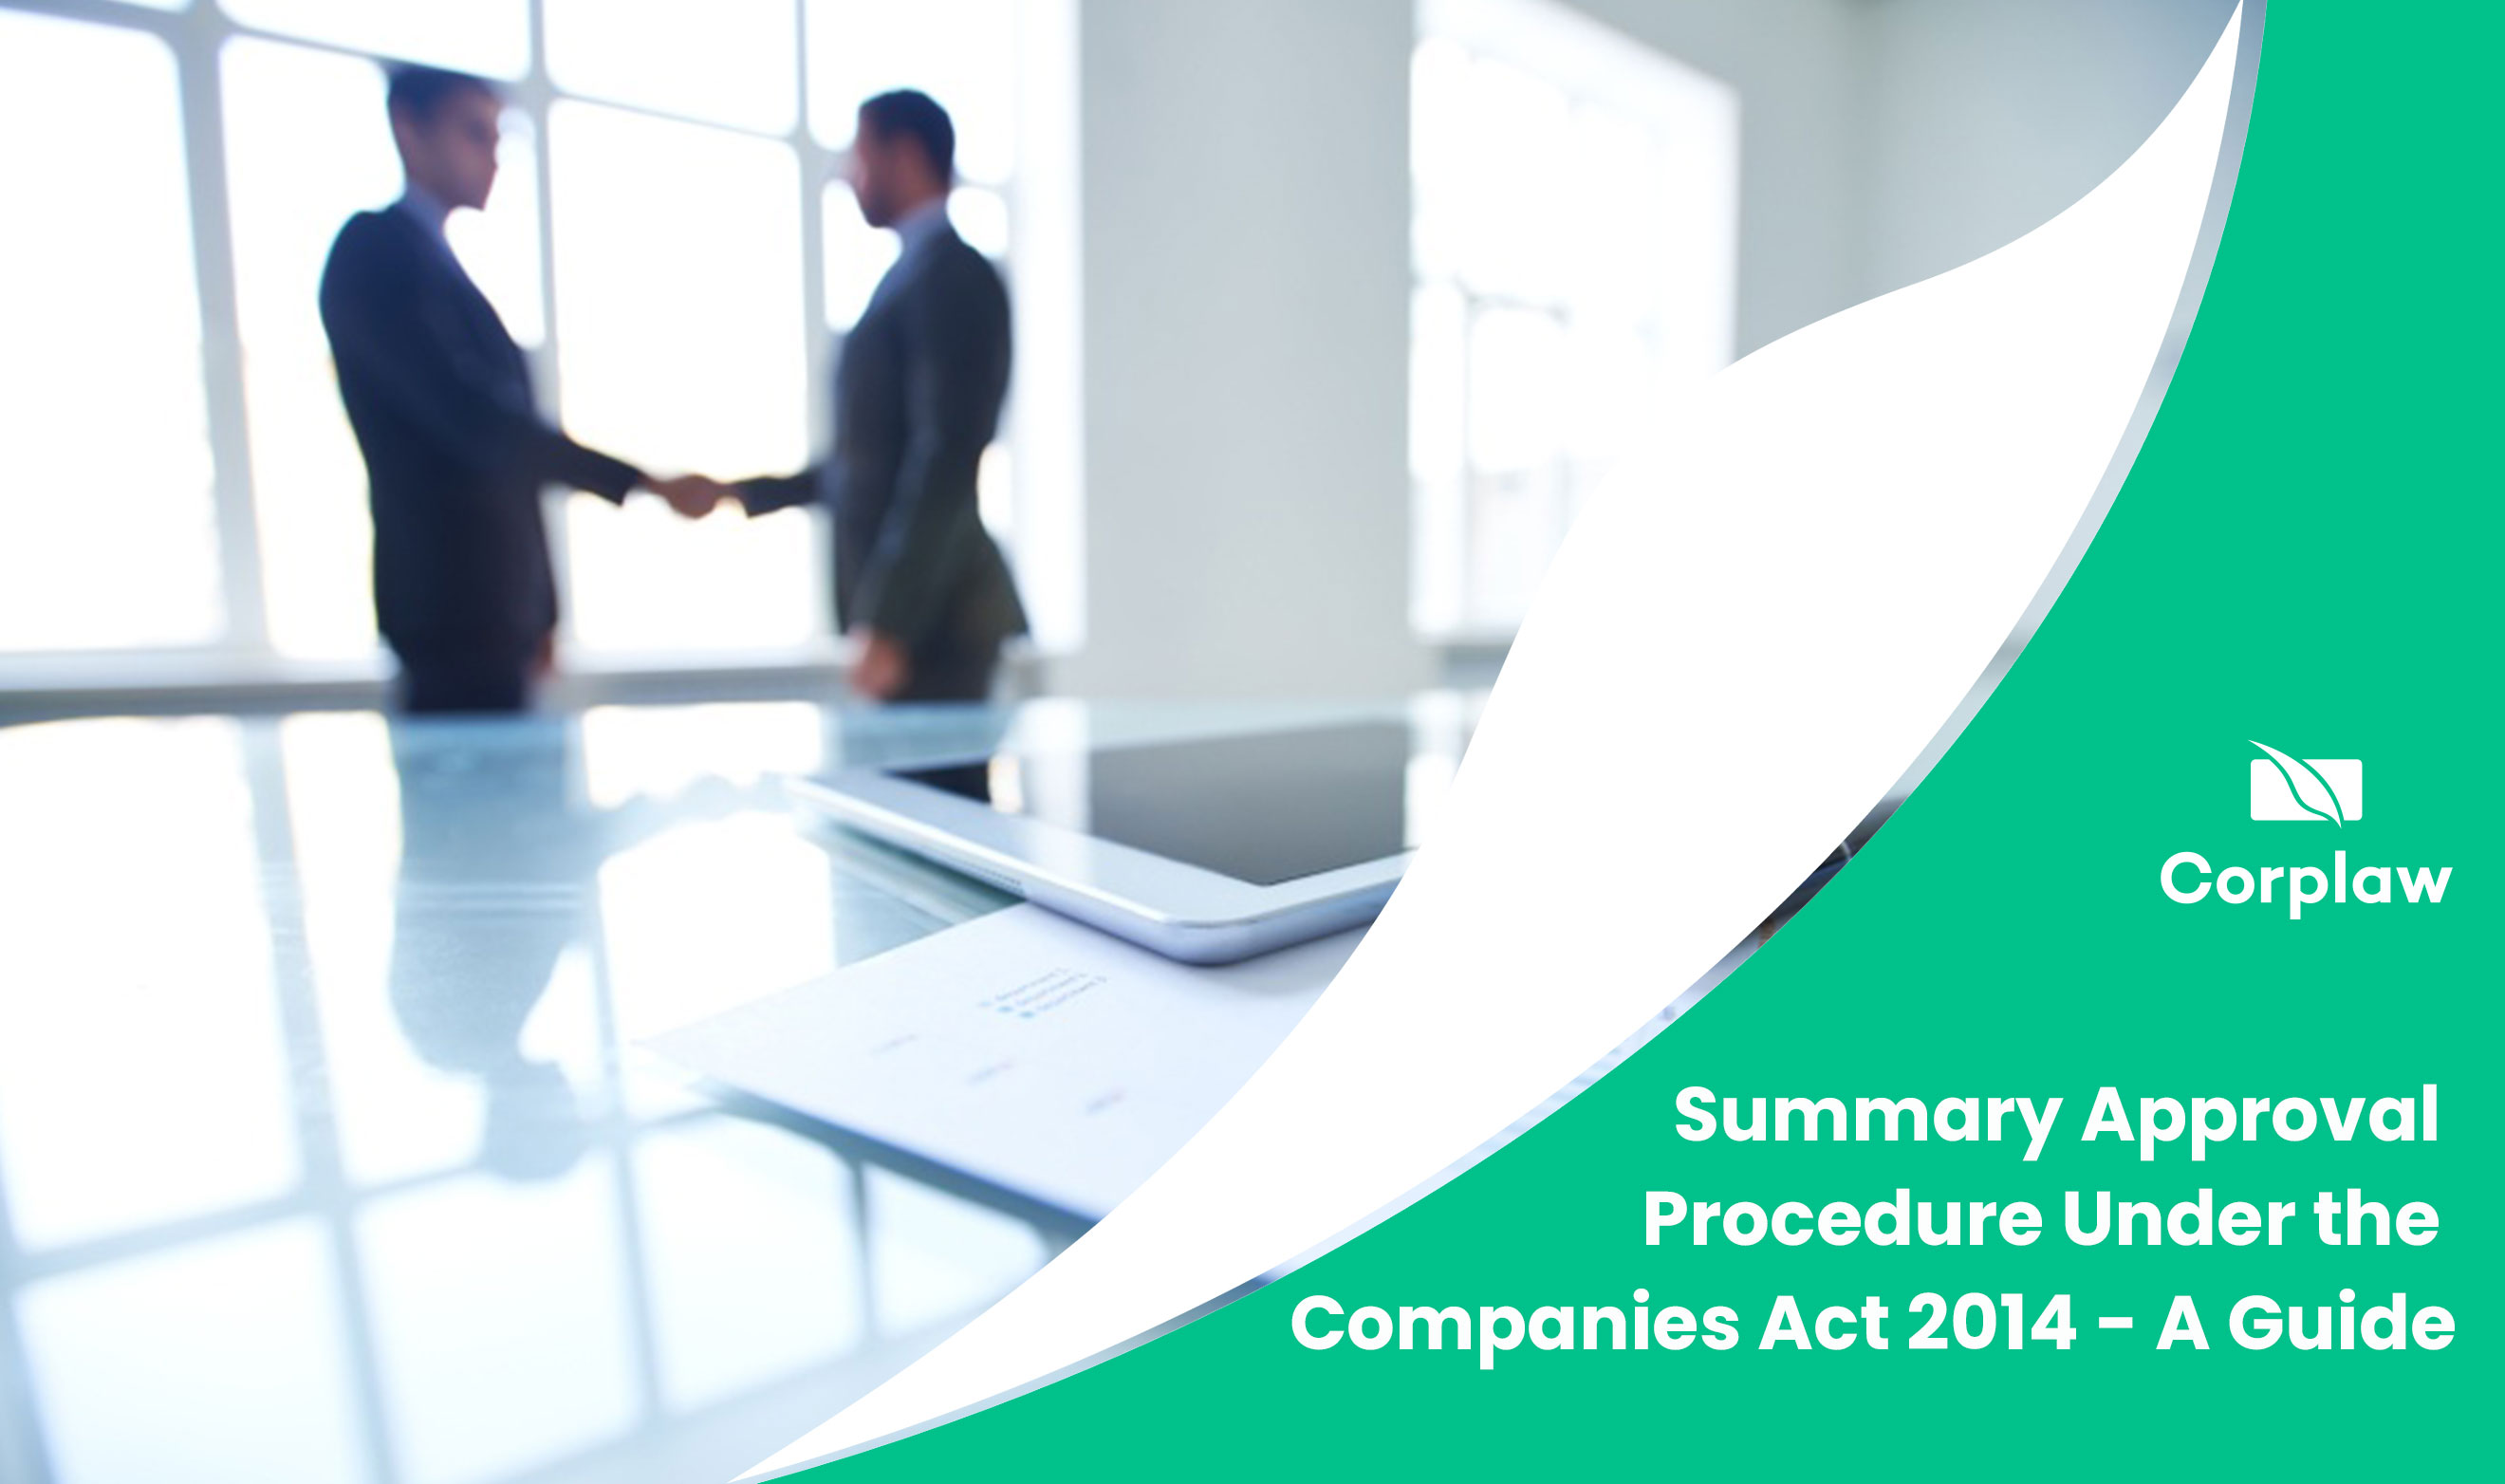 Corplaw-Blog-Summary-Approval-Procedure-Under-Companies-Act-2014---A-Brief-Guide